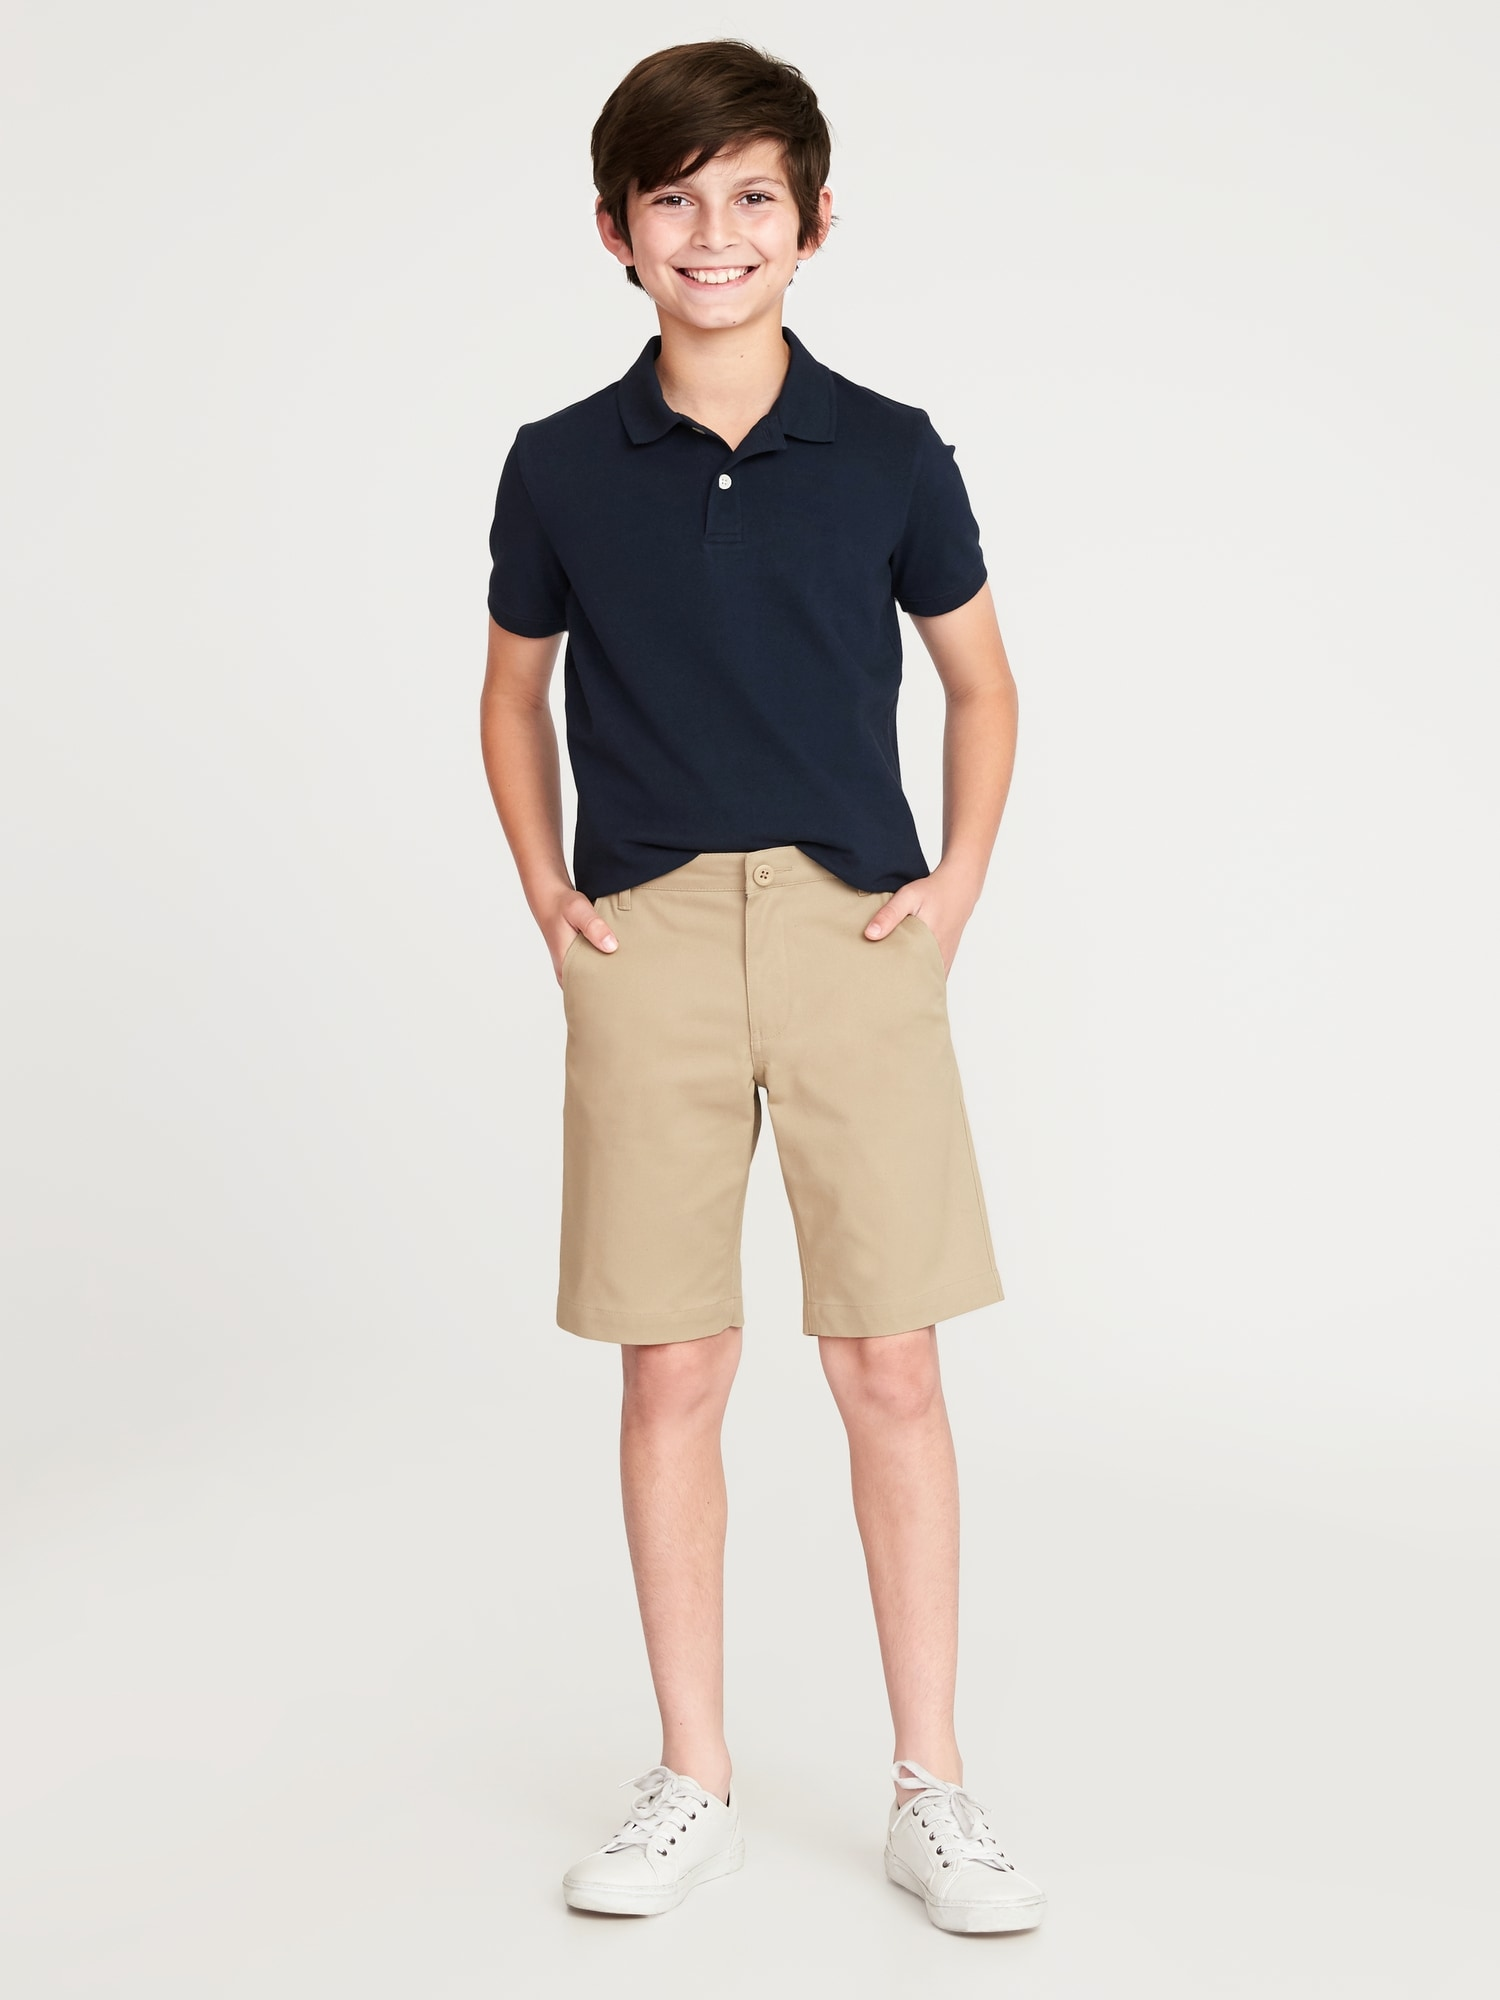 51c4a0aed871 Built-In Flex Twill Straight Uniform Shorts for Boys | Old Navy